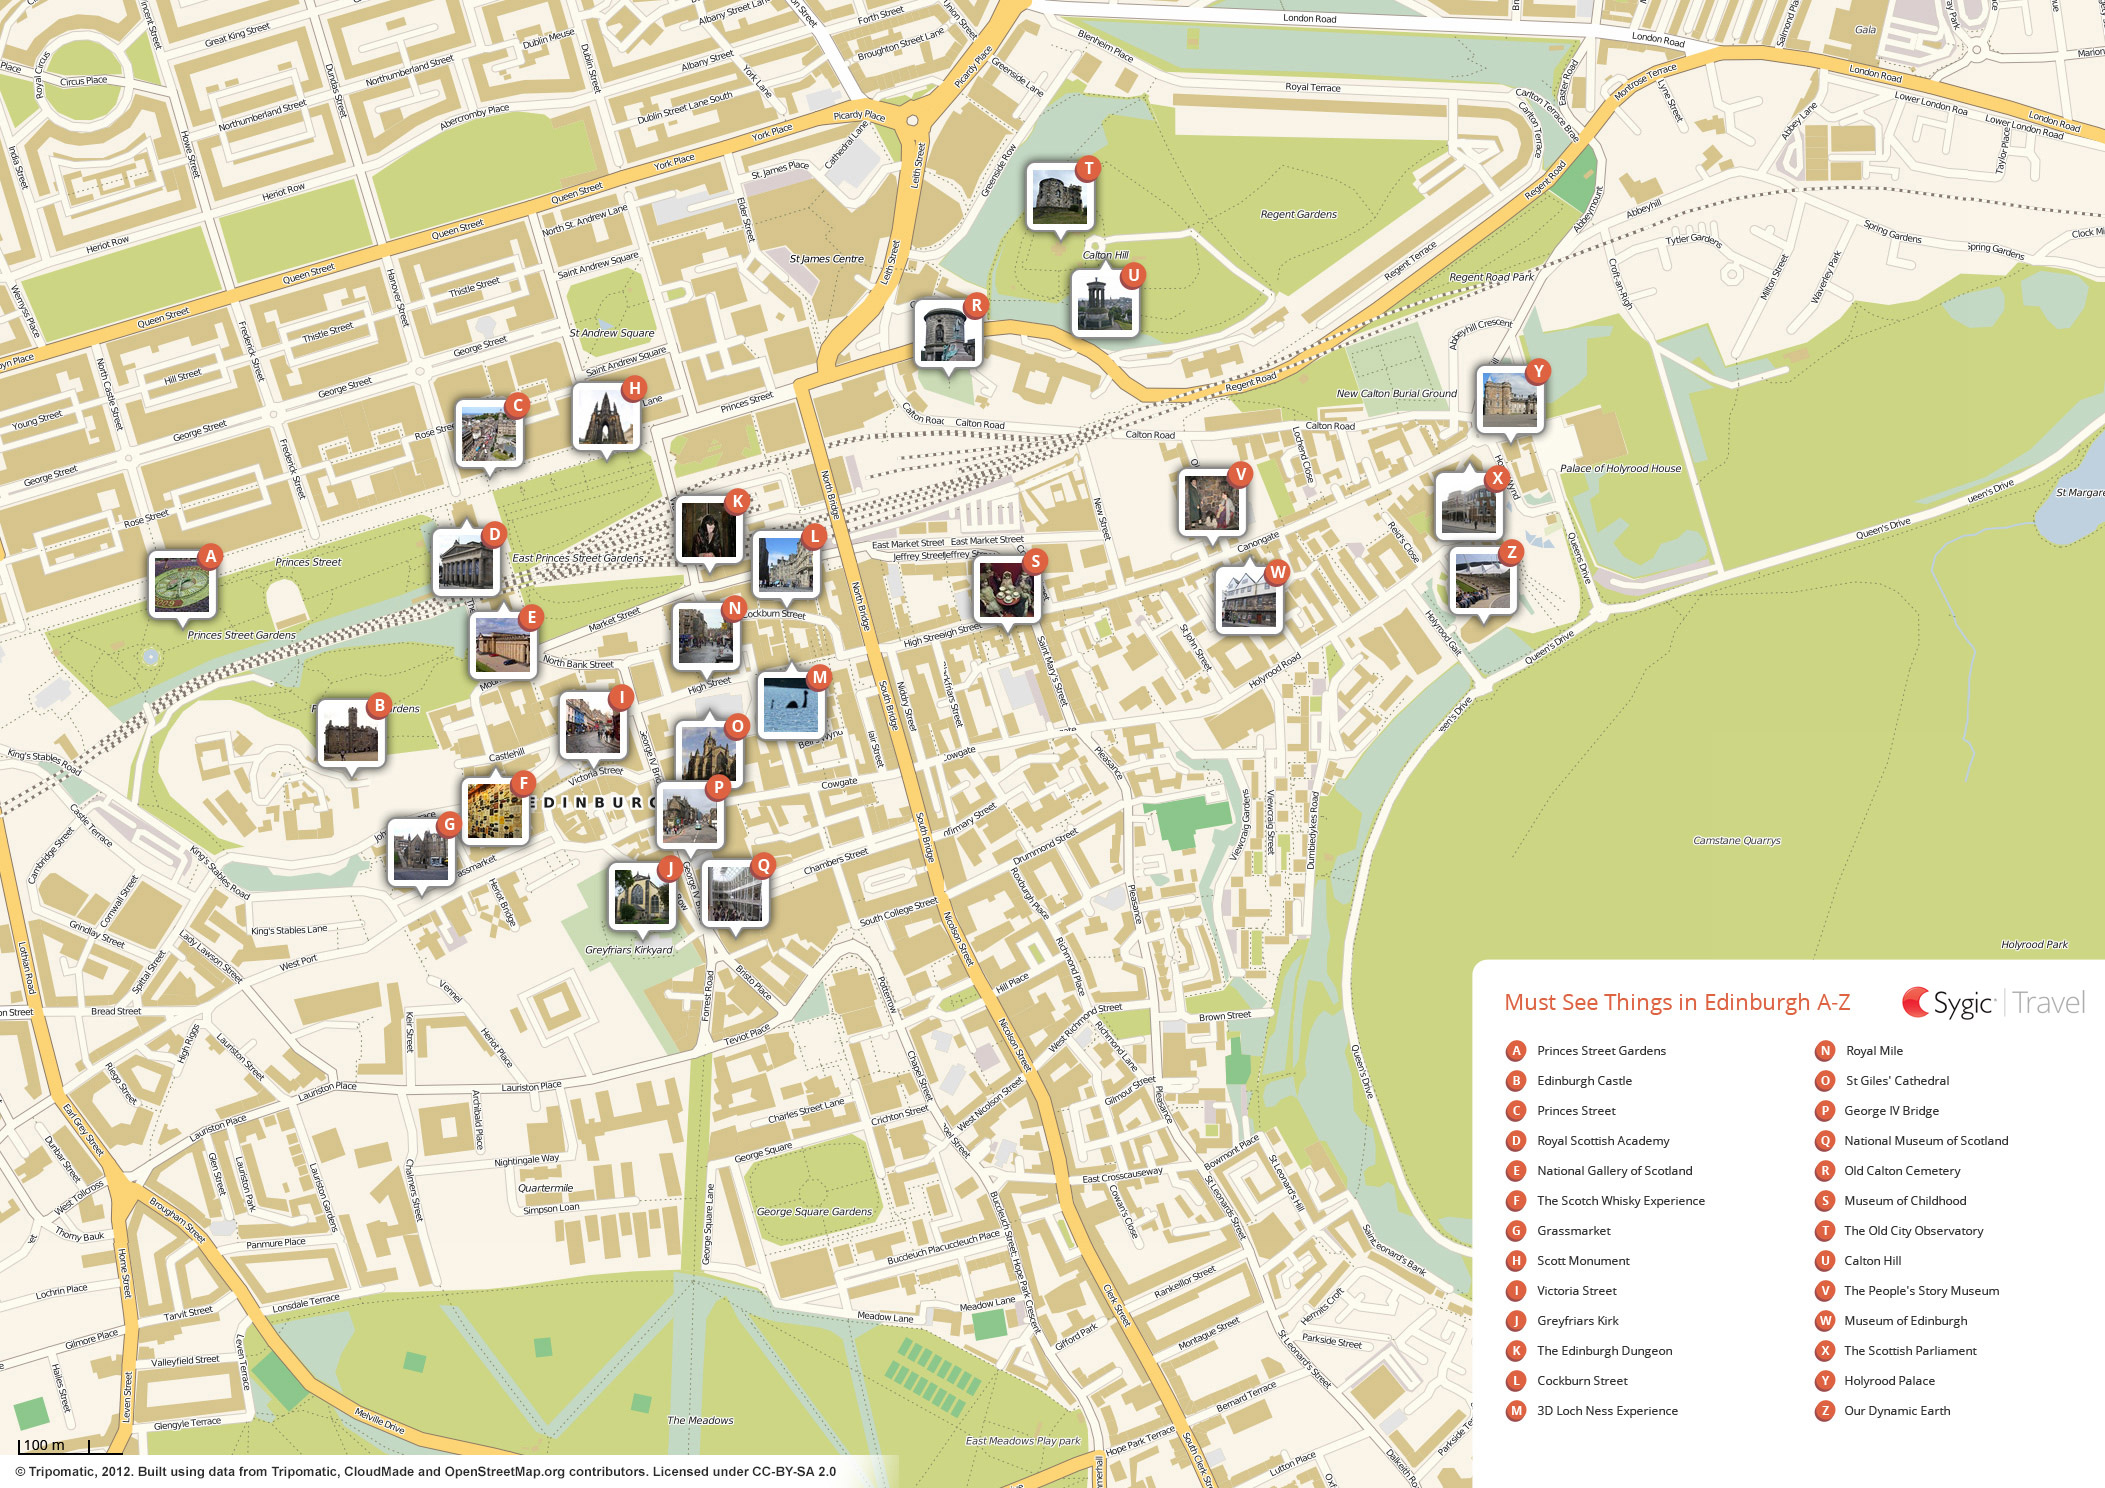 Edinburgh Printable Tourist Map – Amsterdam City Centre Map Tourist